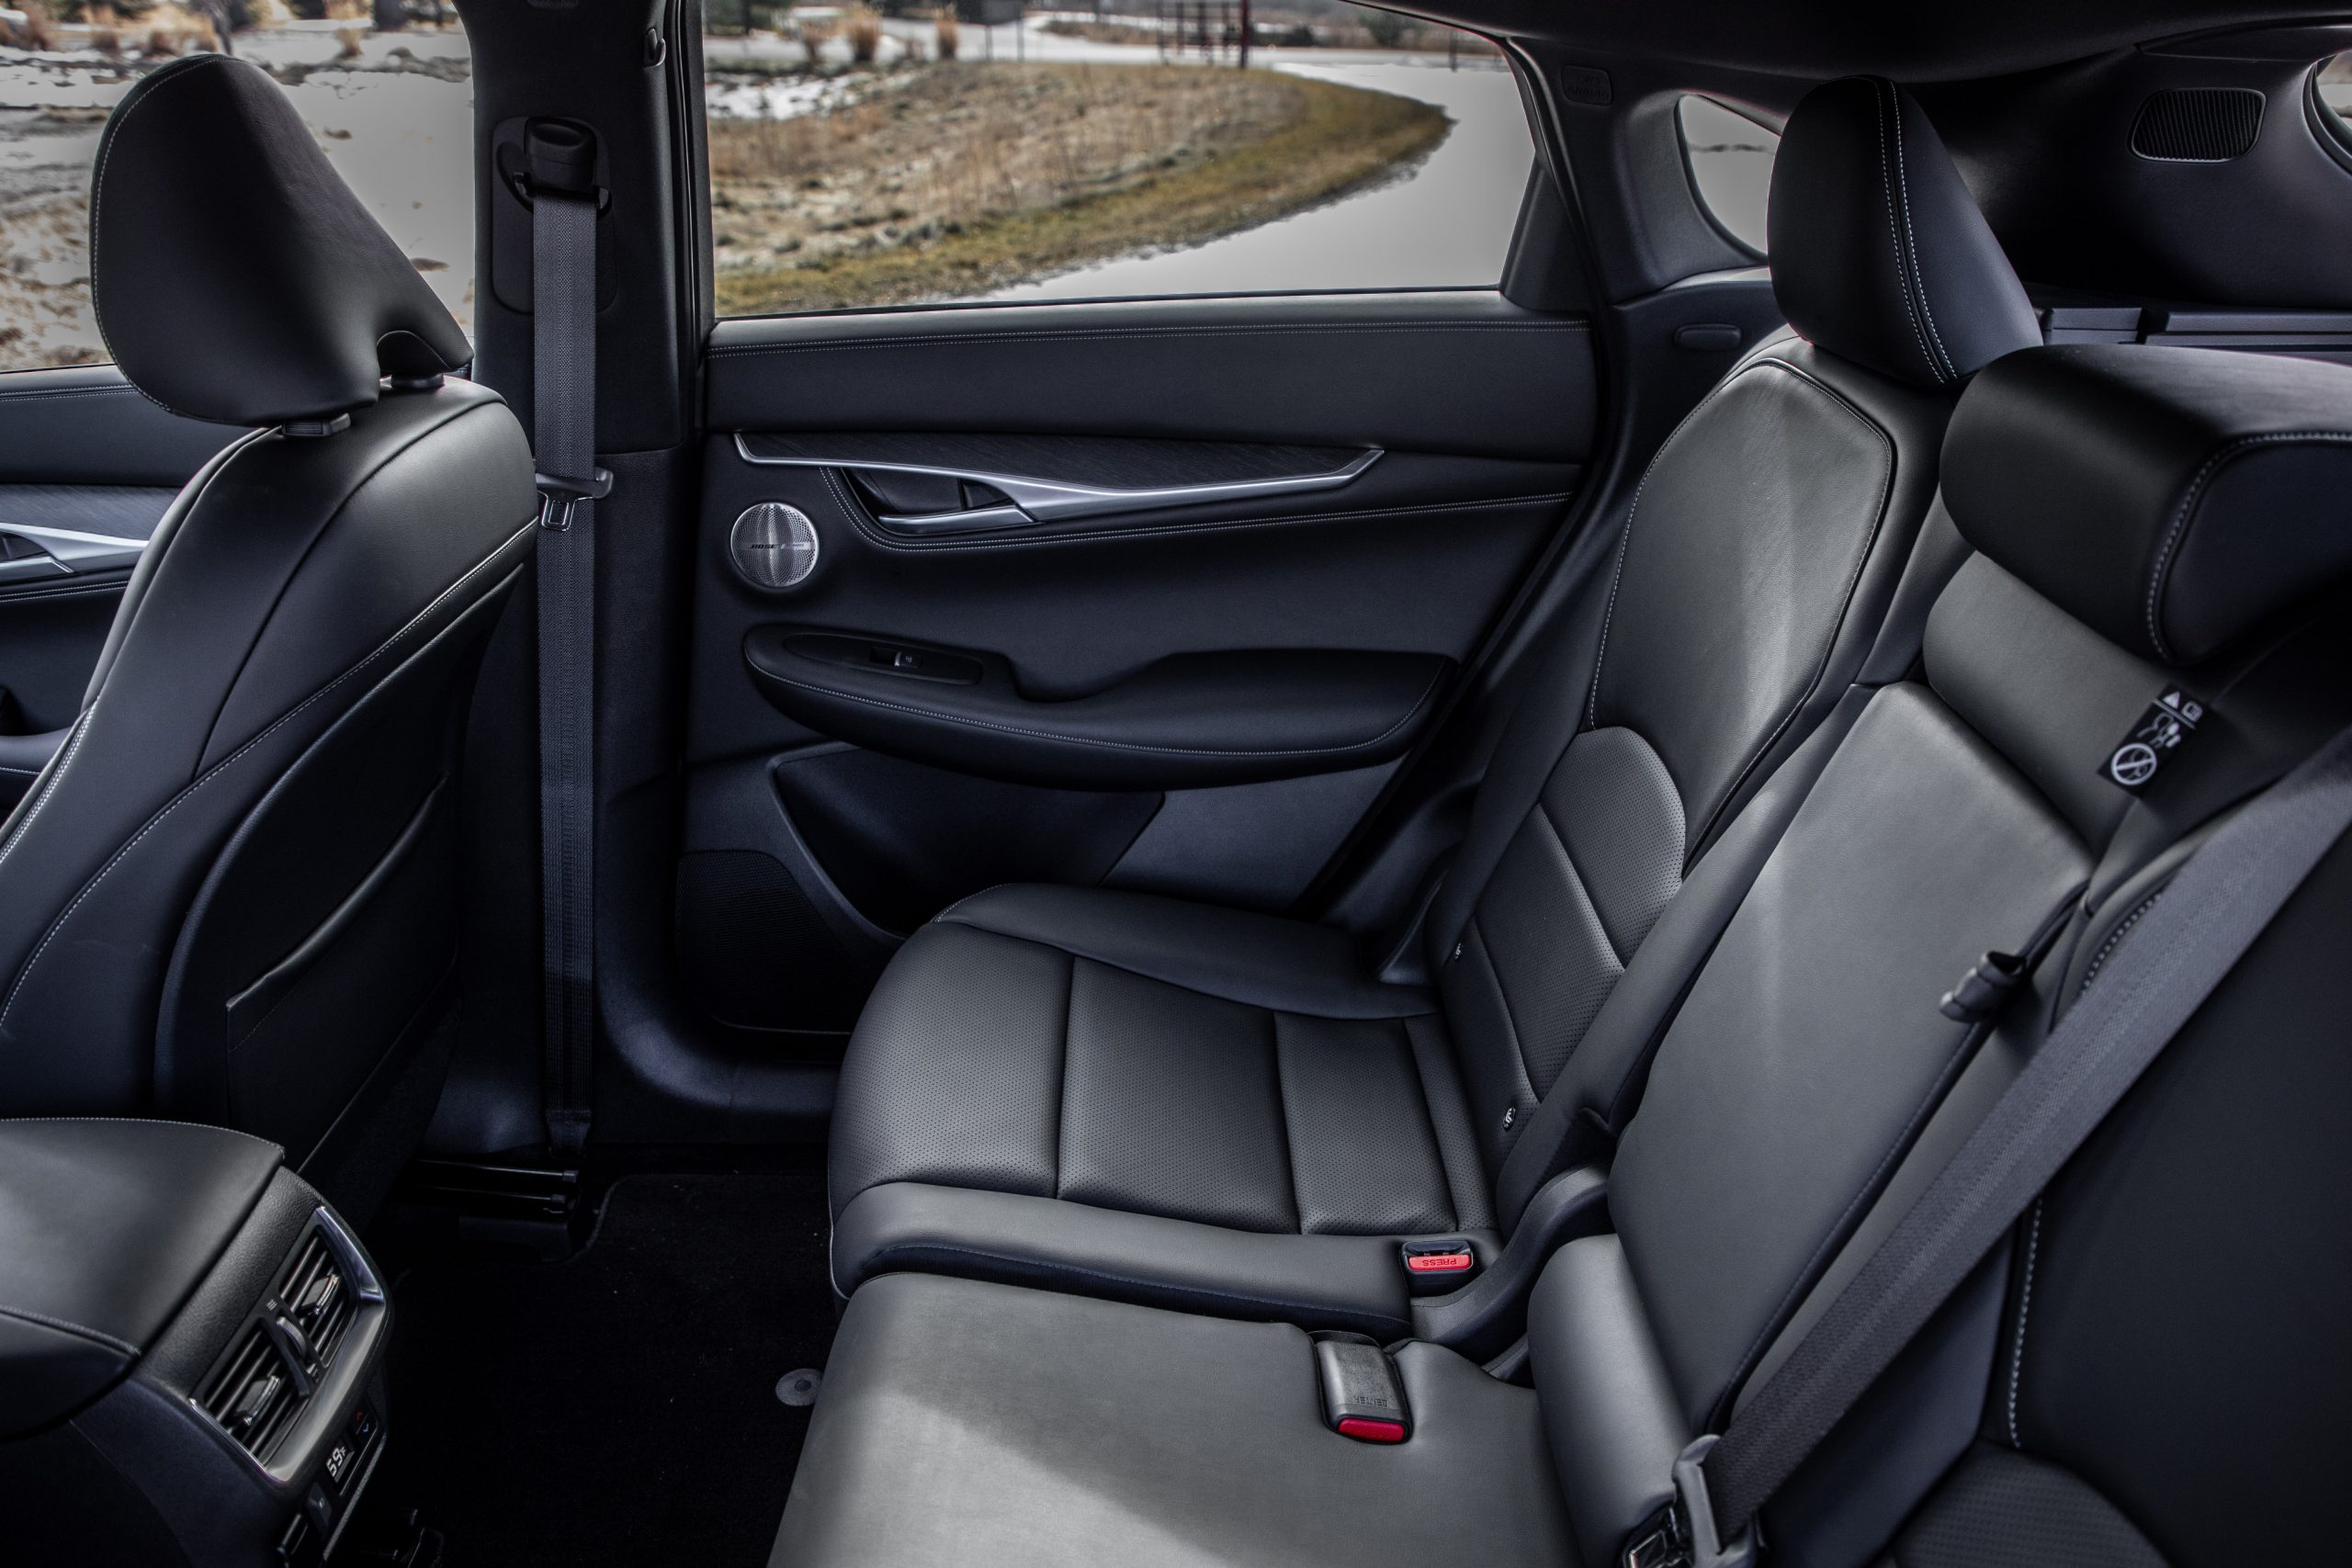 2022 Infiniti QX55 interior rear seats